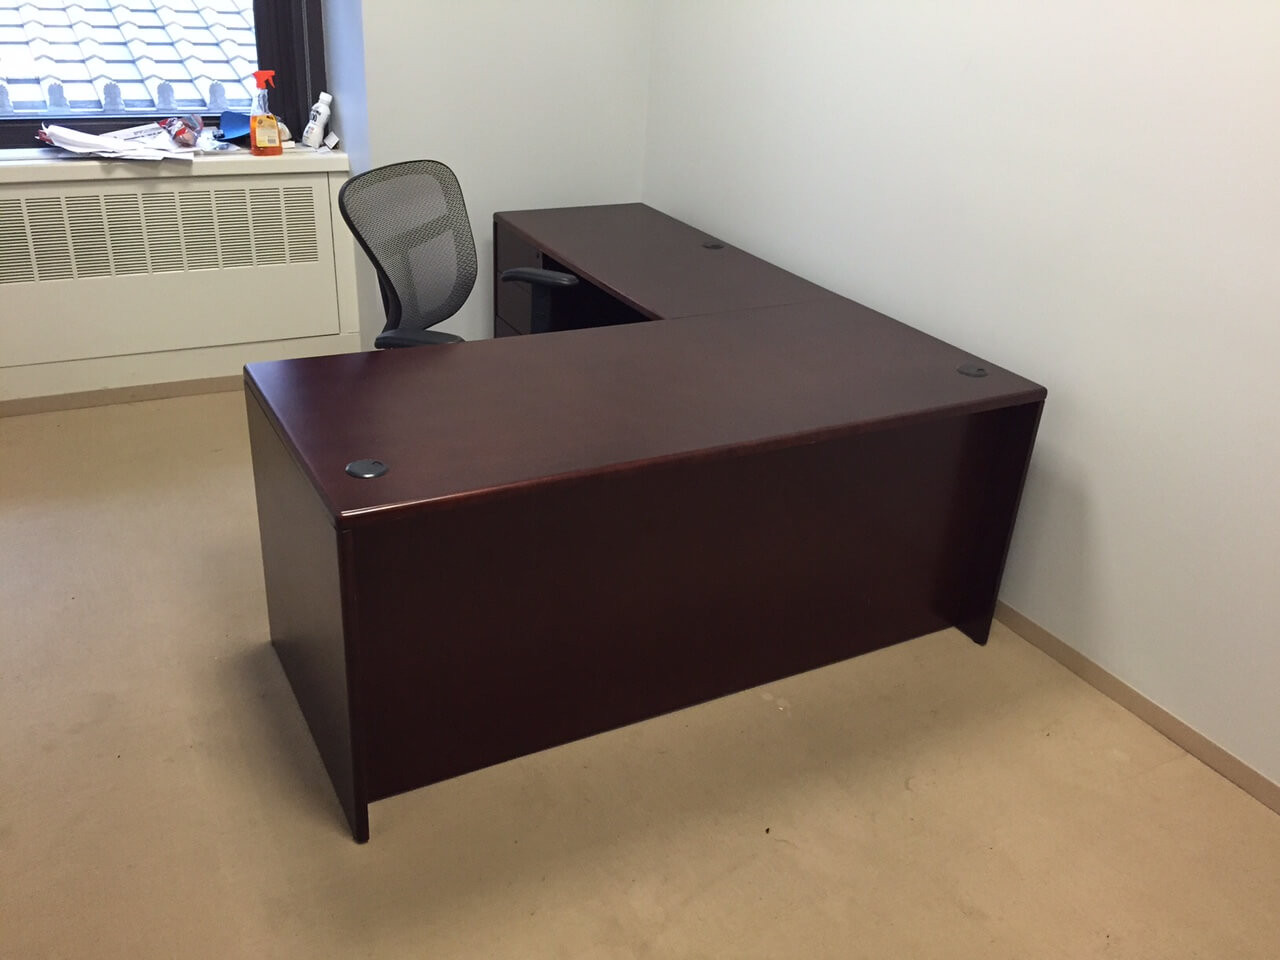 Best ideas about Office Furniture For Sale . Save or Pin Wood fice Desk Used fice Desks Used fice Now.